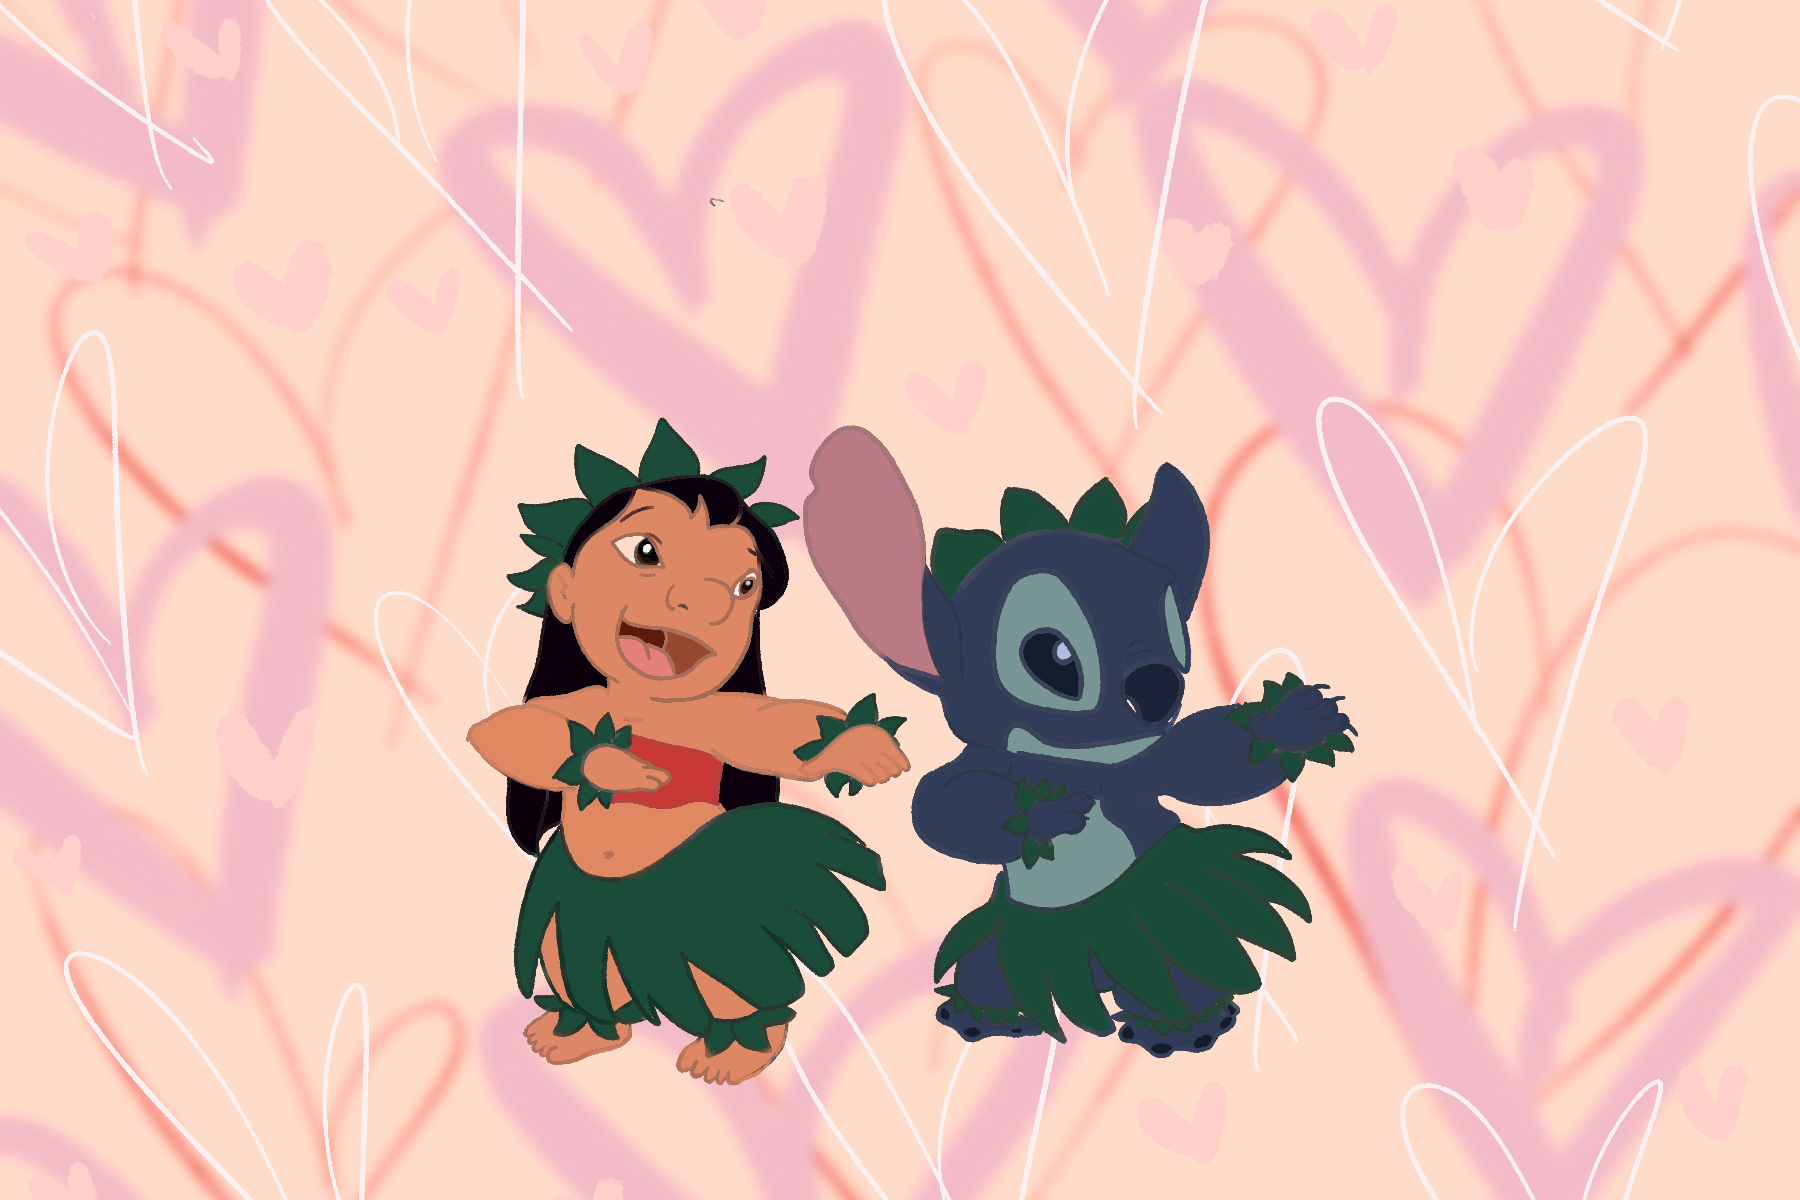 Lilo and Stitch illustration by Sezi Kaya